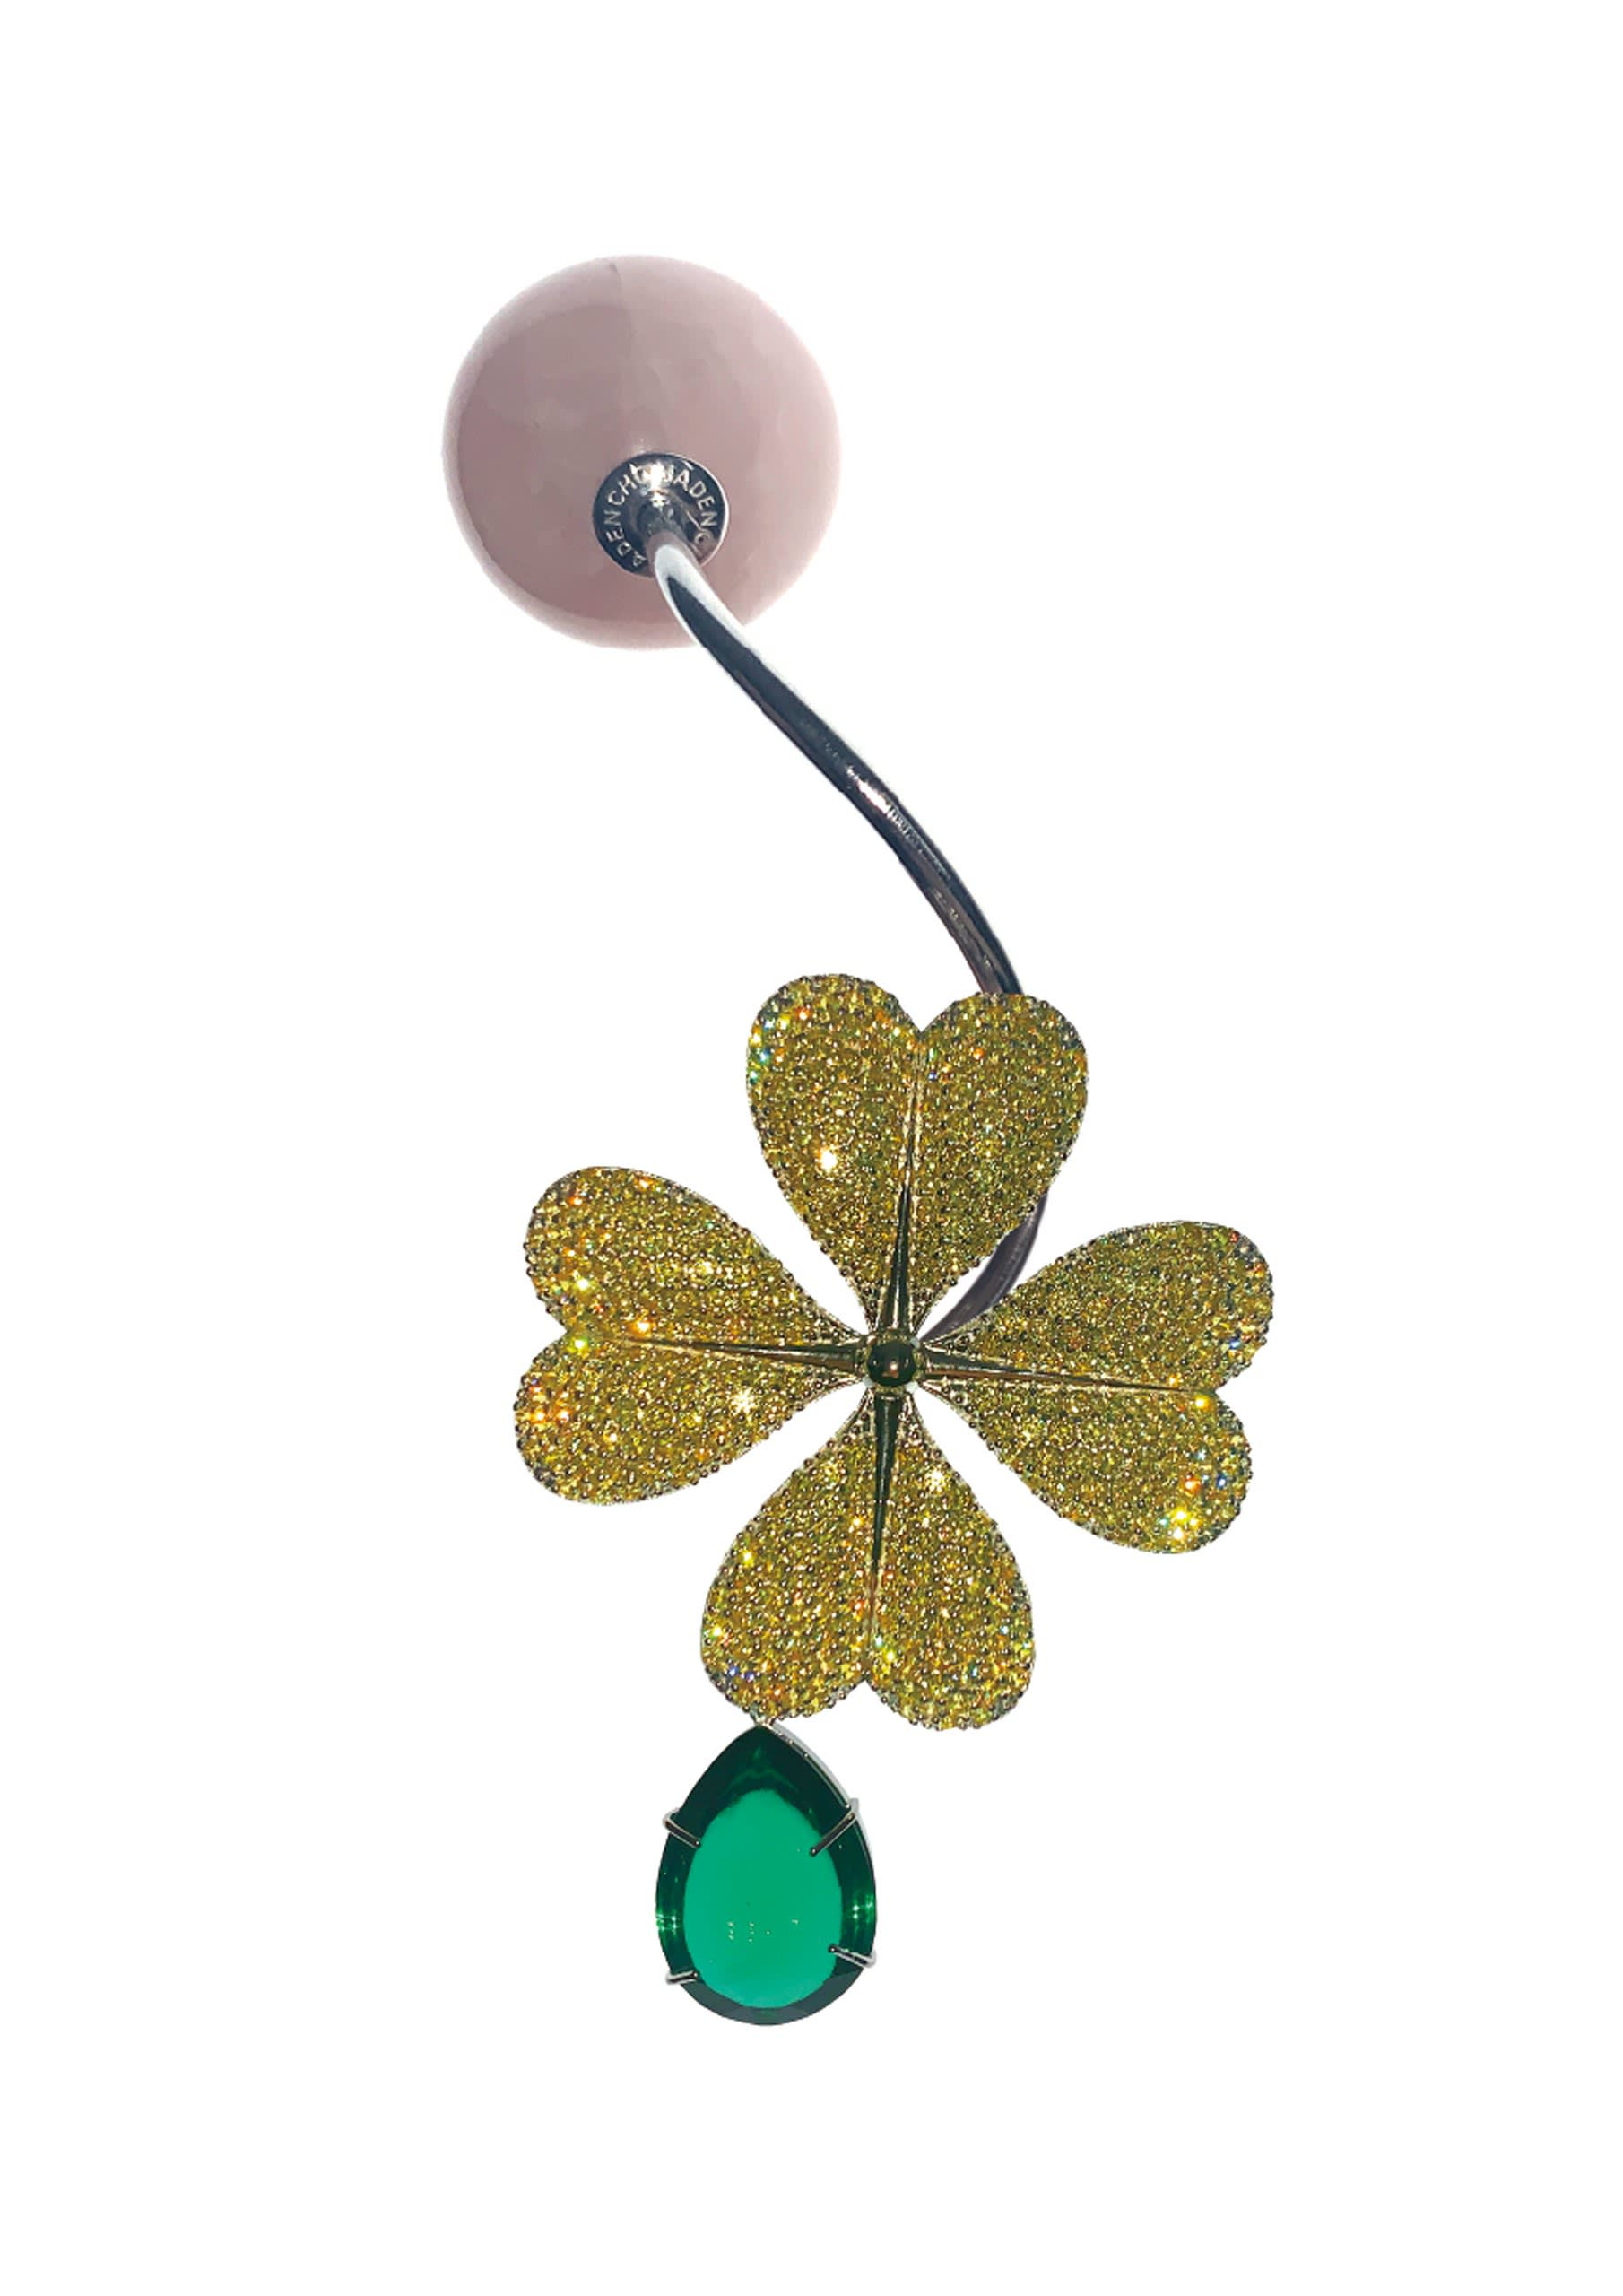 Jewelry 02. Four Leaves Clover